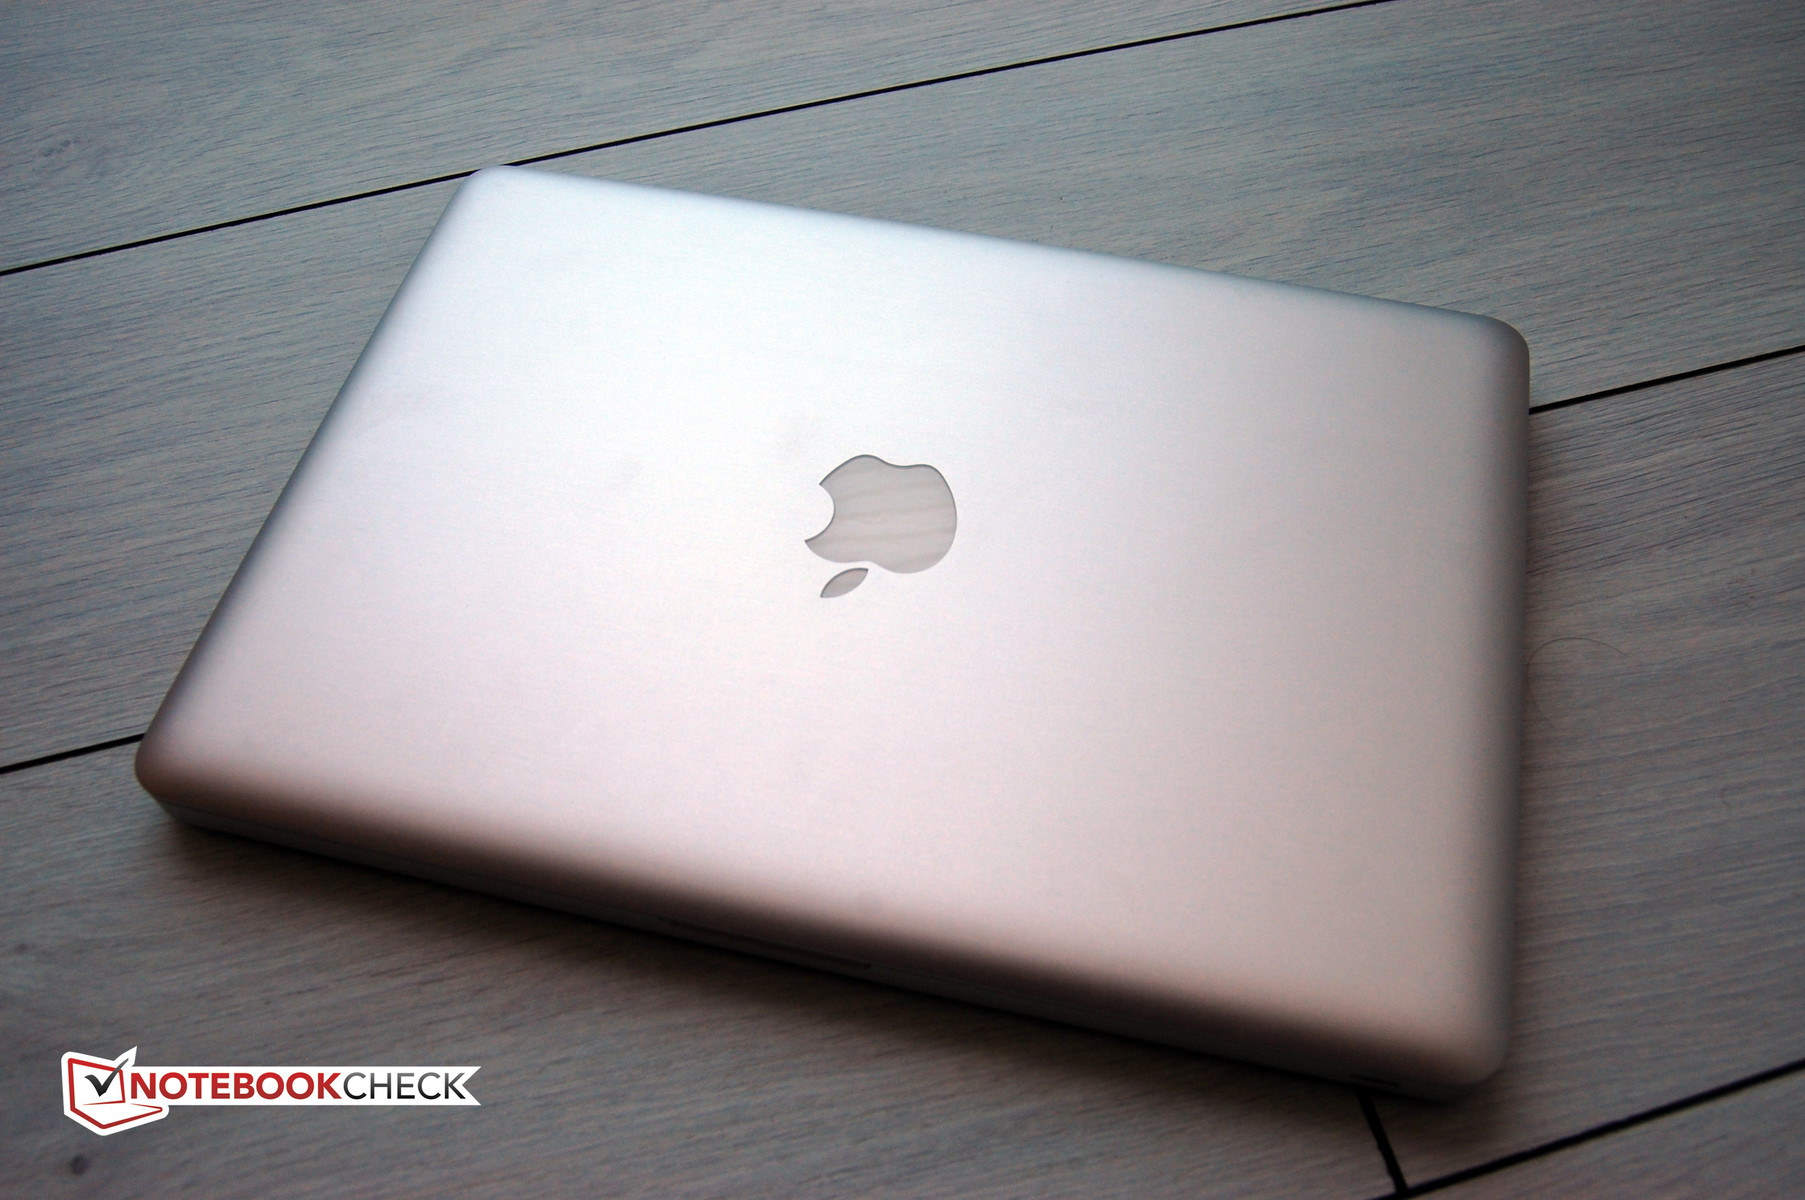 Review Apple MacBook Pro 13 2 5 GHz Mid 2012 Notebook